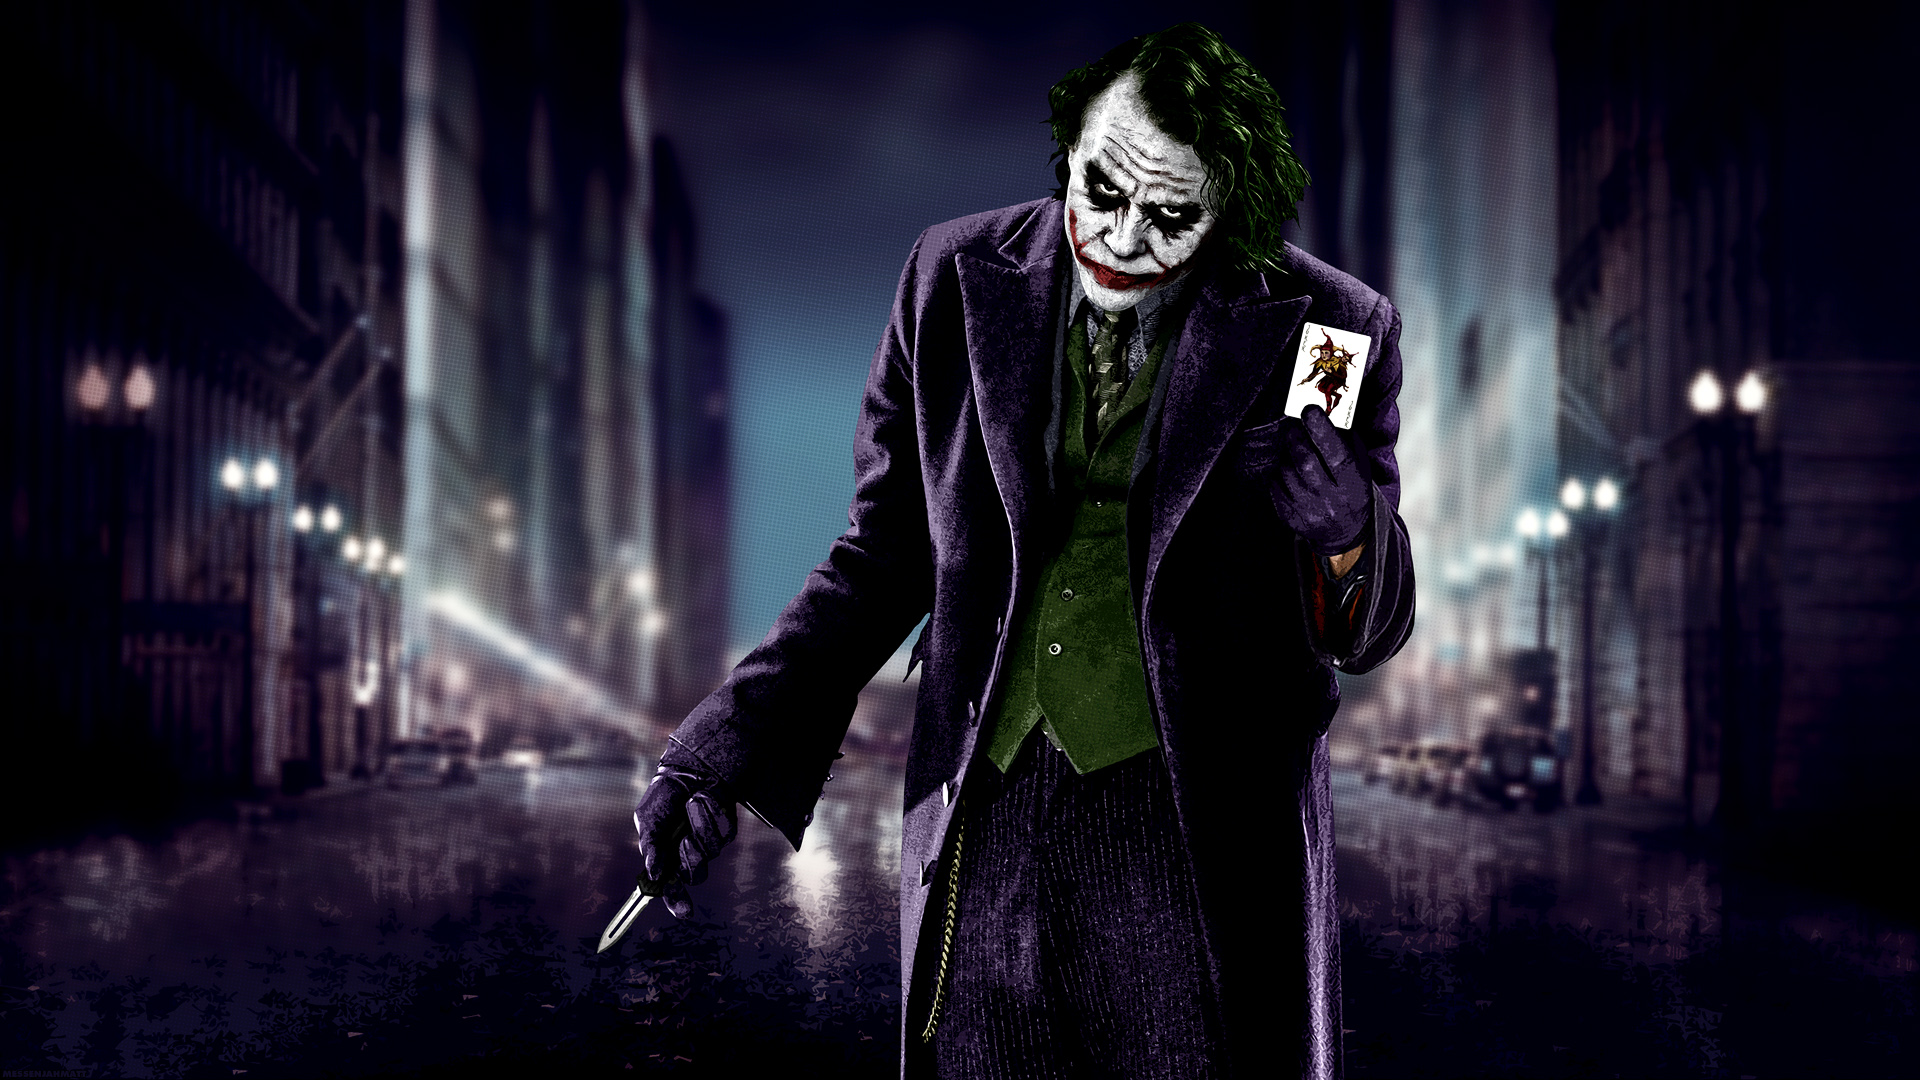 for Joker immagini hd